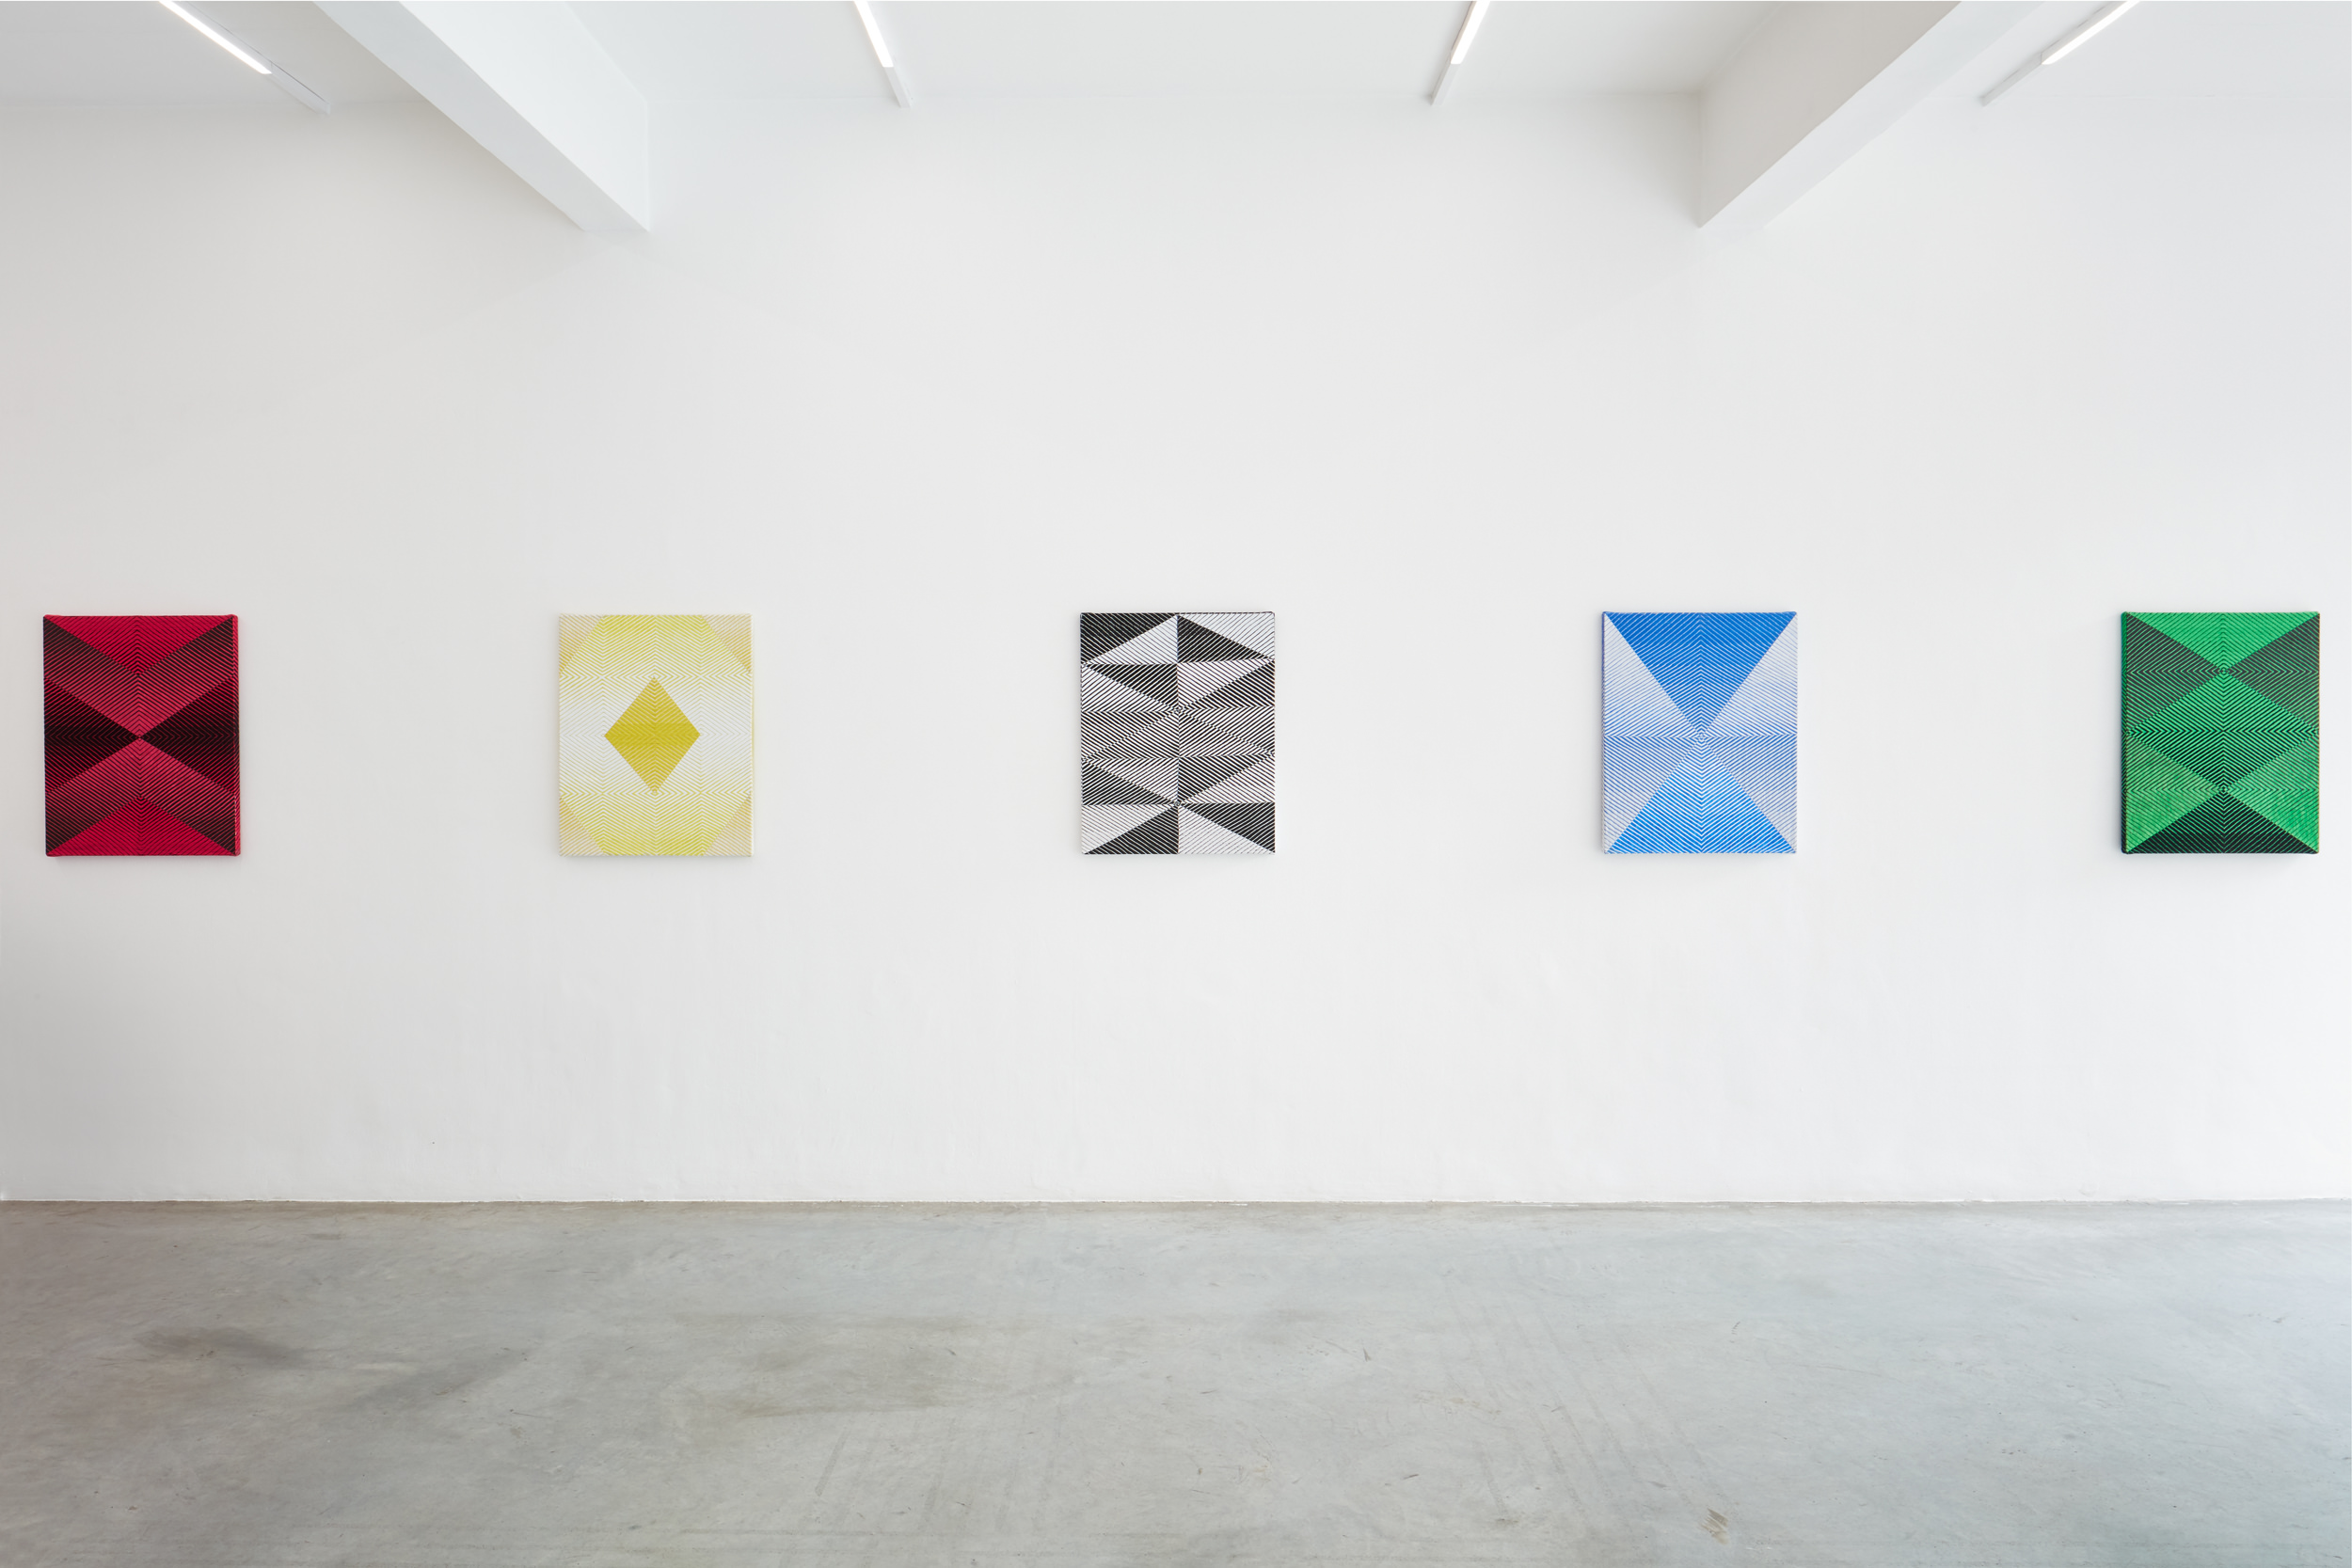 Samantha Bittman, Shift, Installation view 2